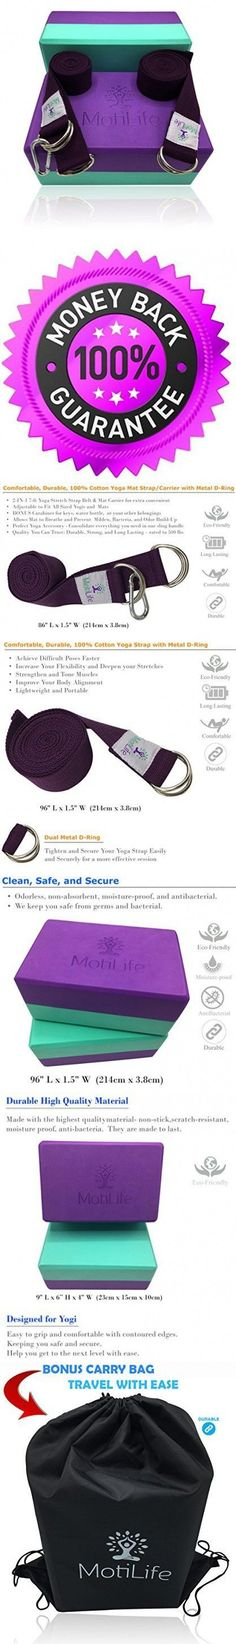 Yoga Blocks 2 pack with Yoga Strap and Yoga Mat Carrier Strap Set - Improve Strength, Flexibility and Deepen Poses | Most Durable Non Toxic Foam Bricks | Lightweight, Odor-Resistant and Moisture-Proof #yogablock